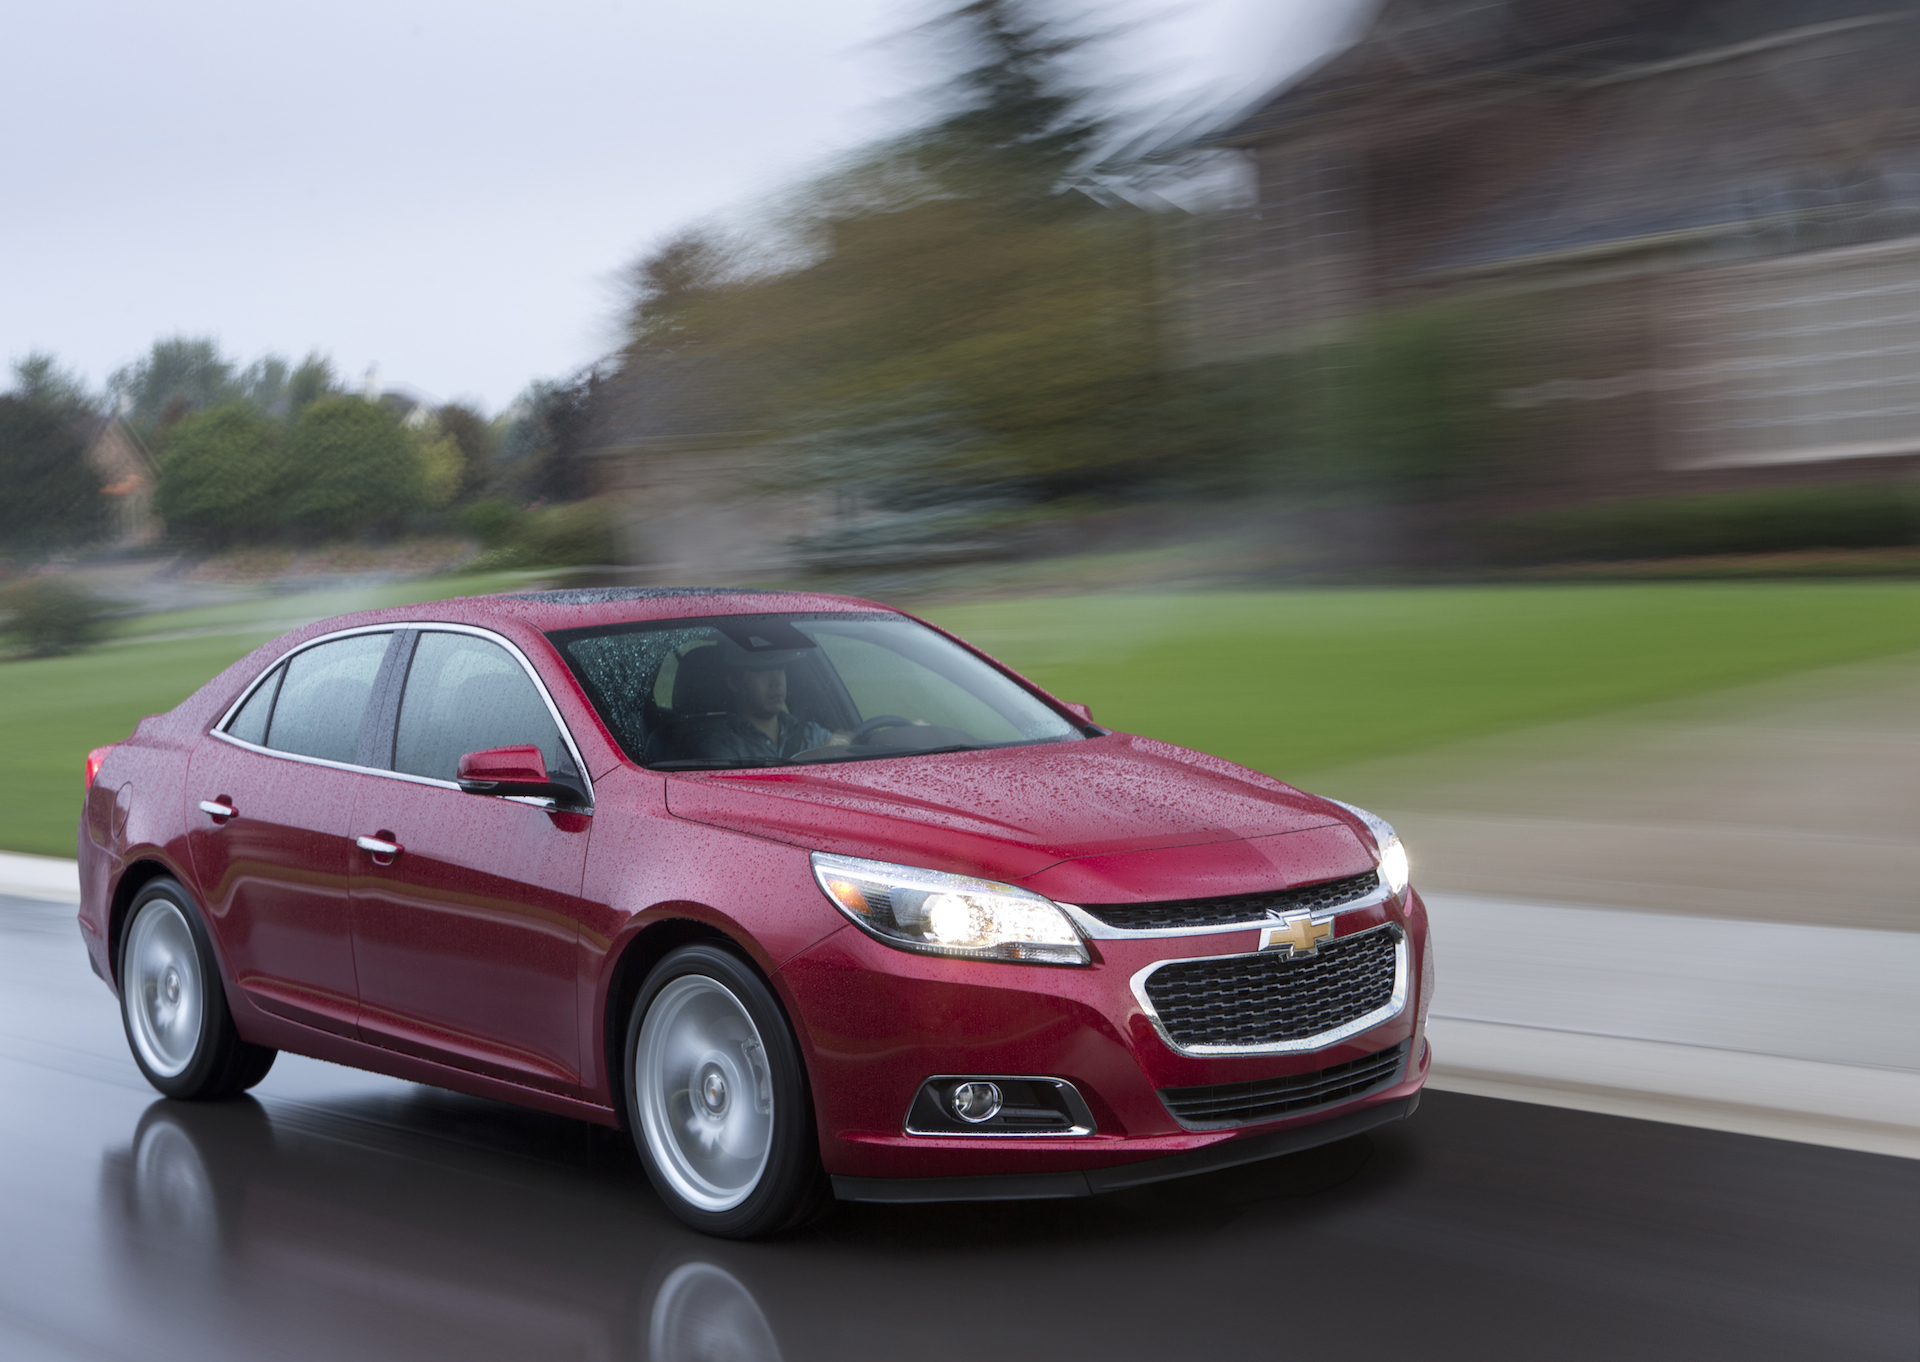 2015 Chevrolet Malibu Chevy Review Ratings Specs Prices And Photos The Car Connection